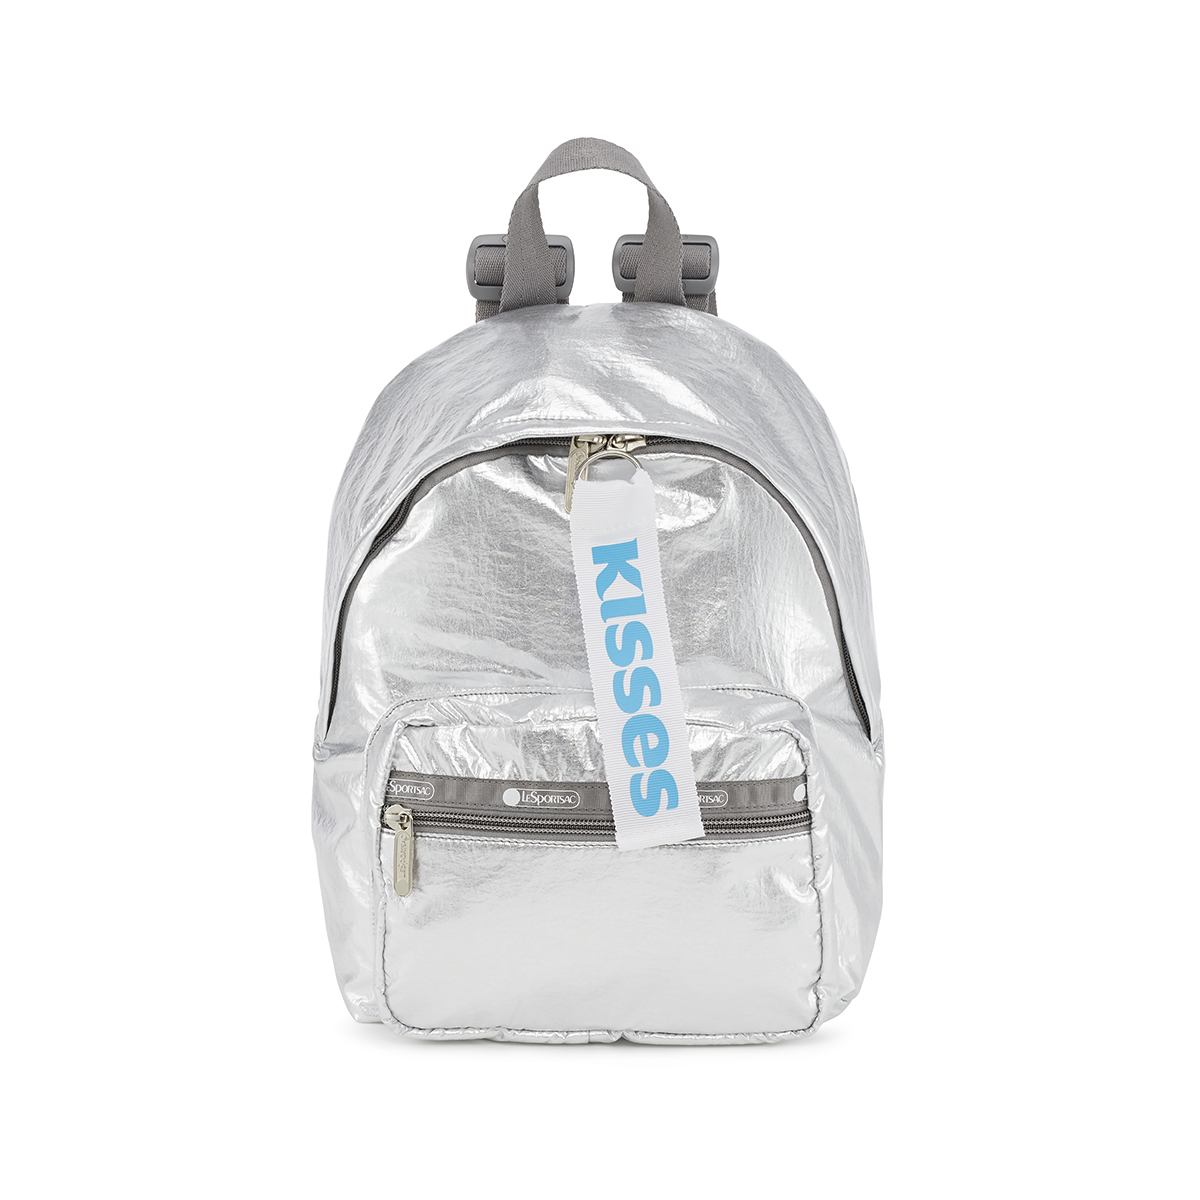 Hershey's Cruising Backpack $137